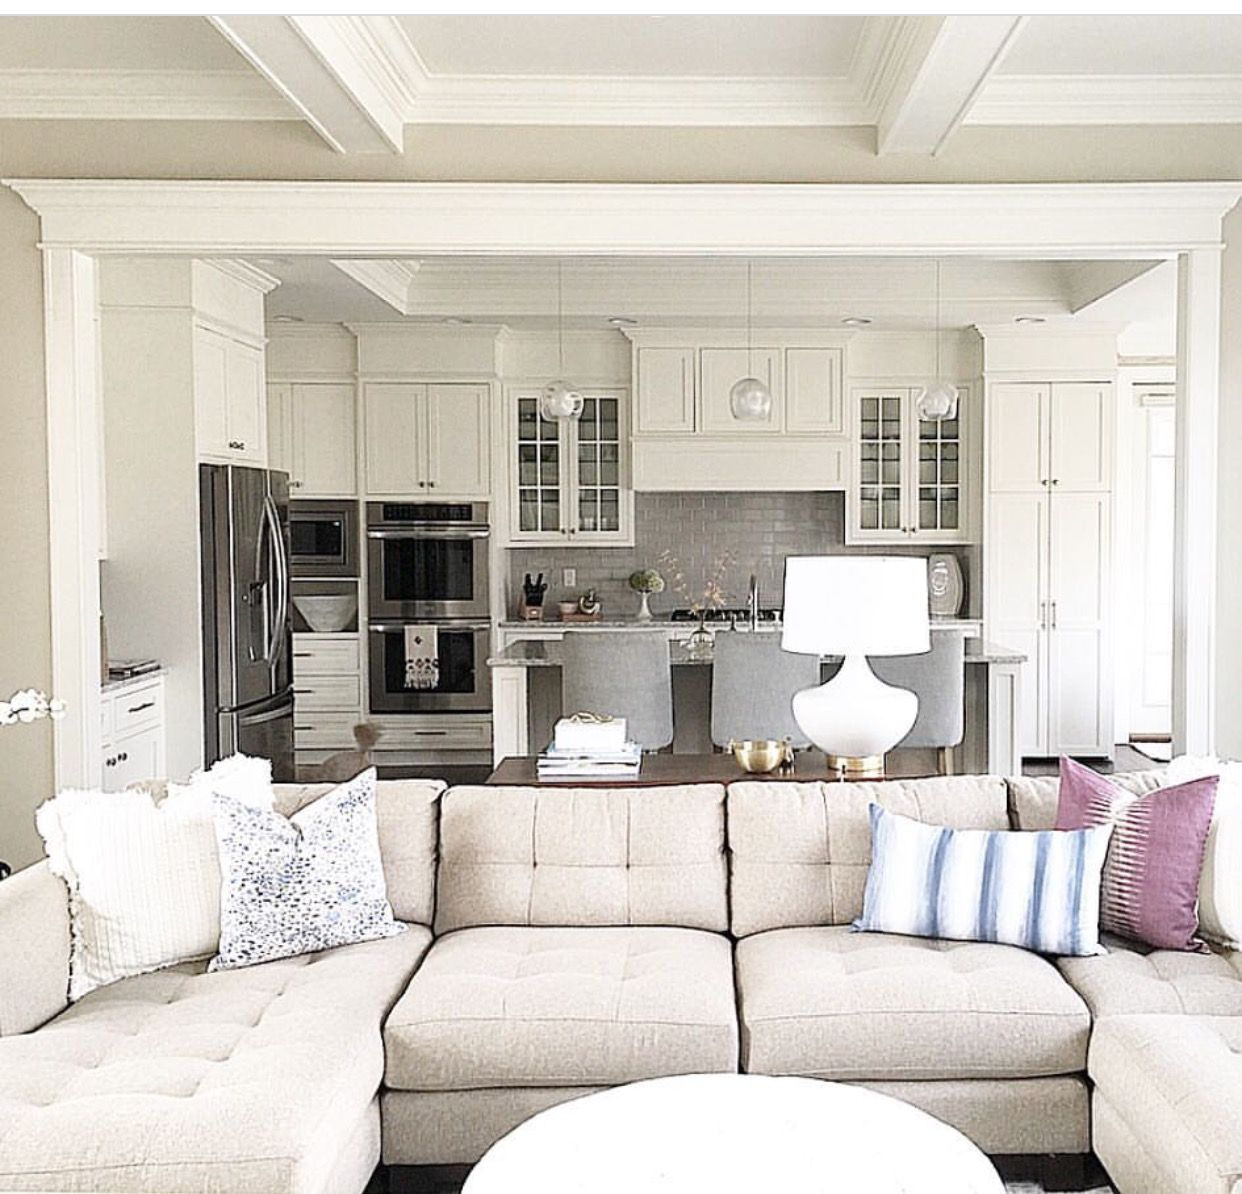 Pin by Rebecca Mora on For the Home | Pinterest | Vent hood, Living ...